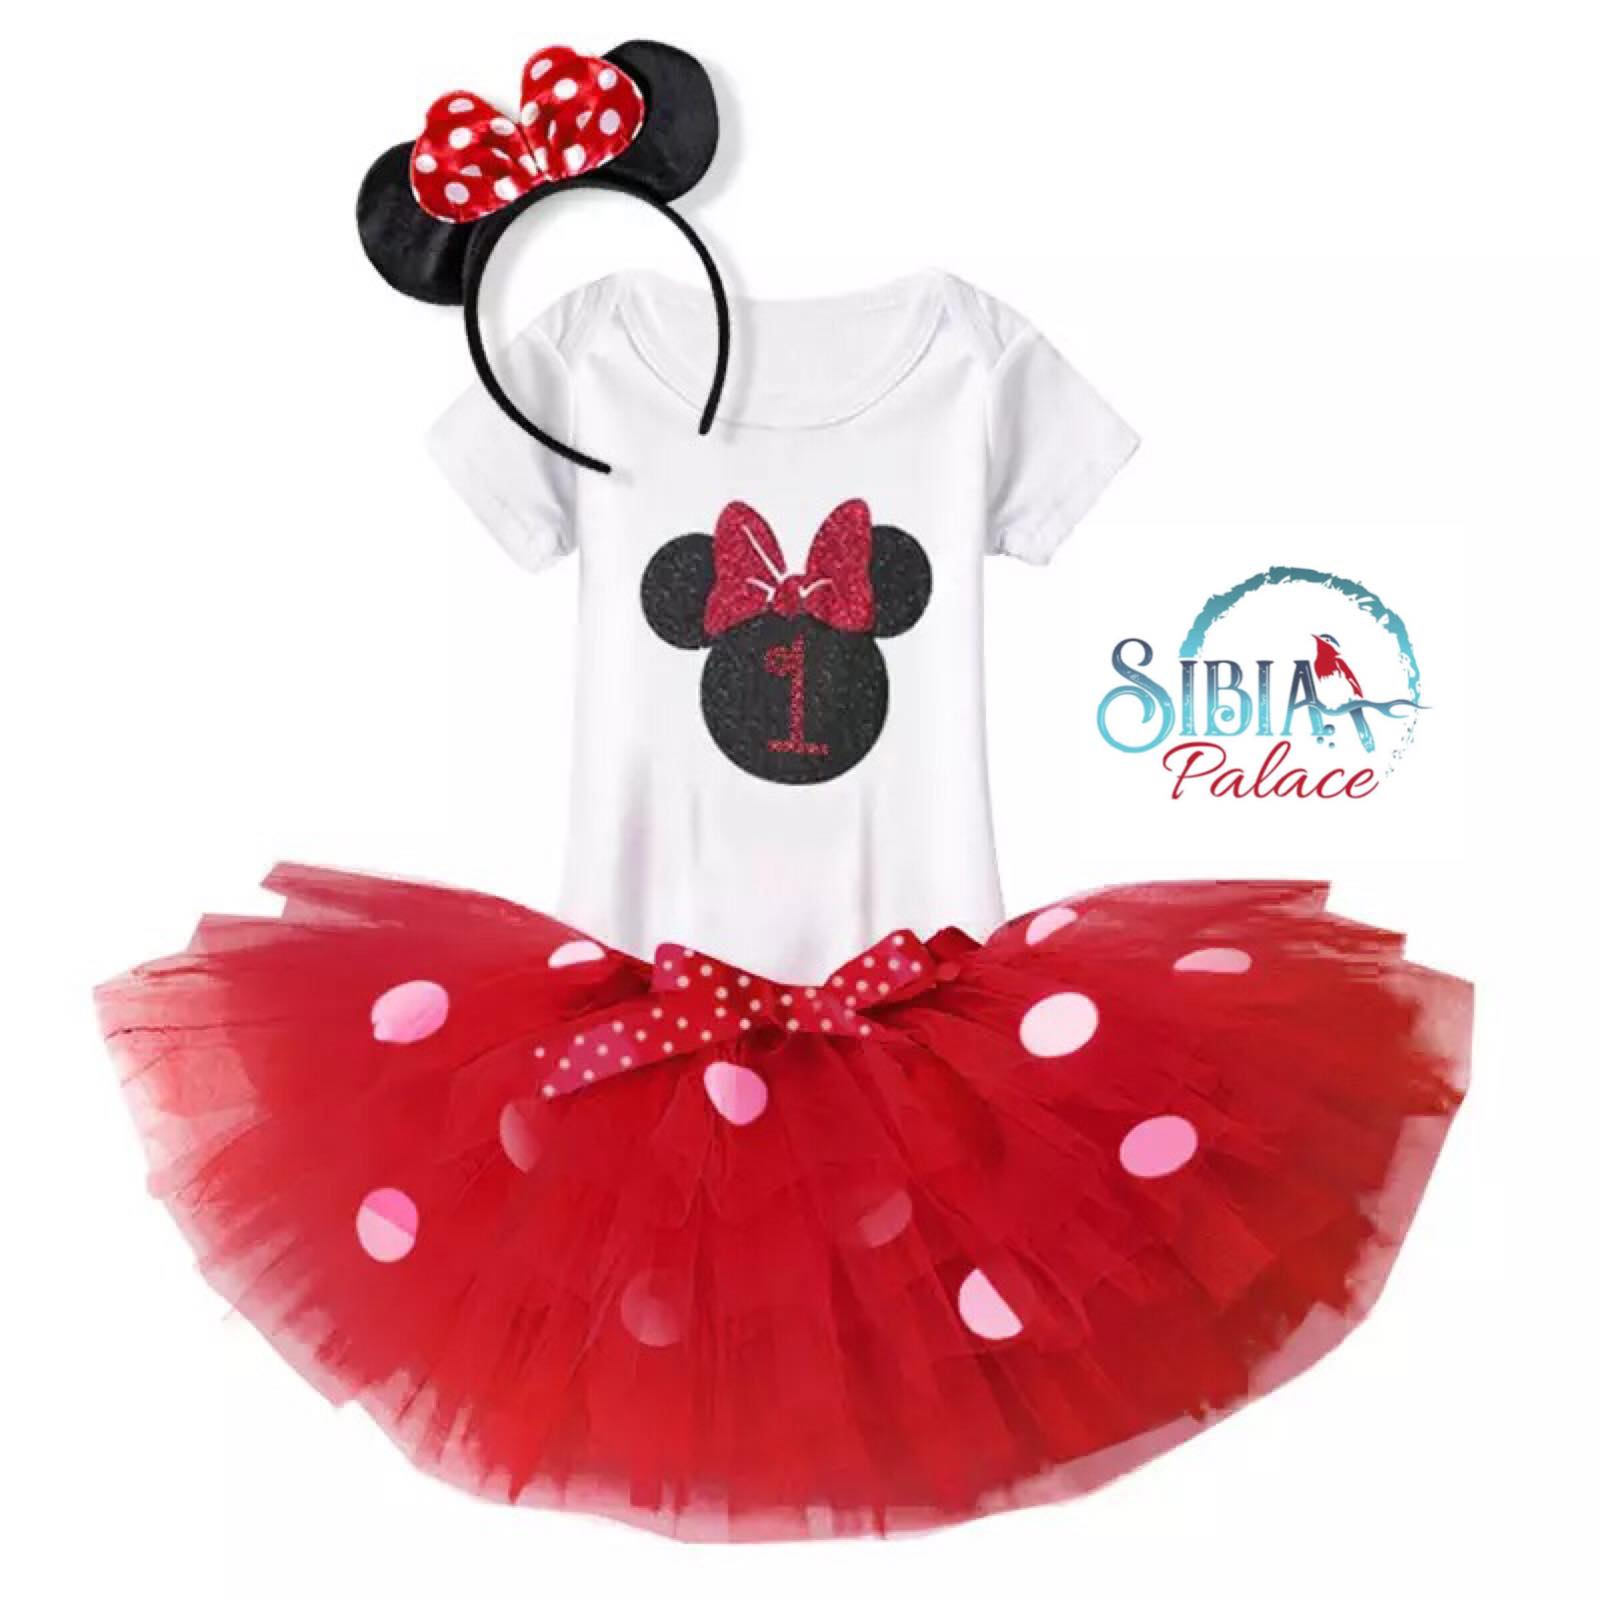 21425b4c6503 Sibia Palace Baby Girl First Birthday Minnie Mouse Theme Red Outfit Set